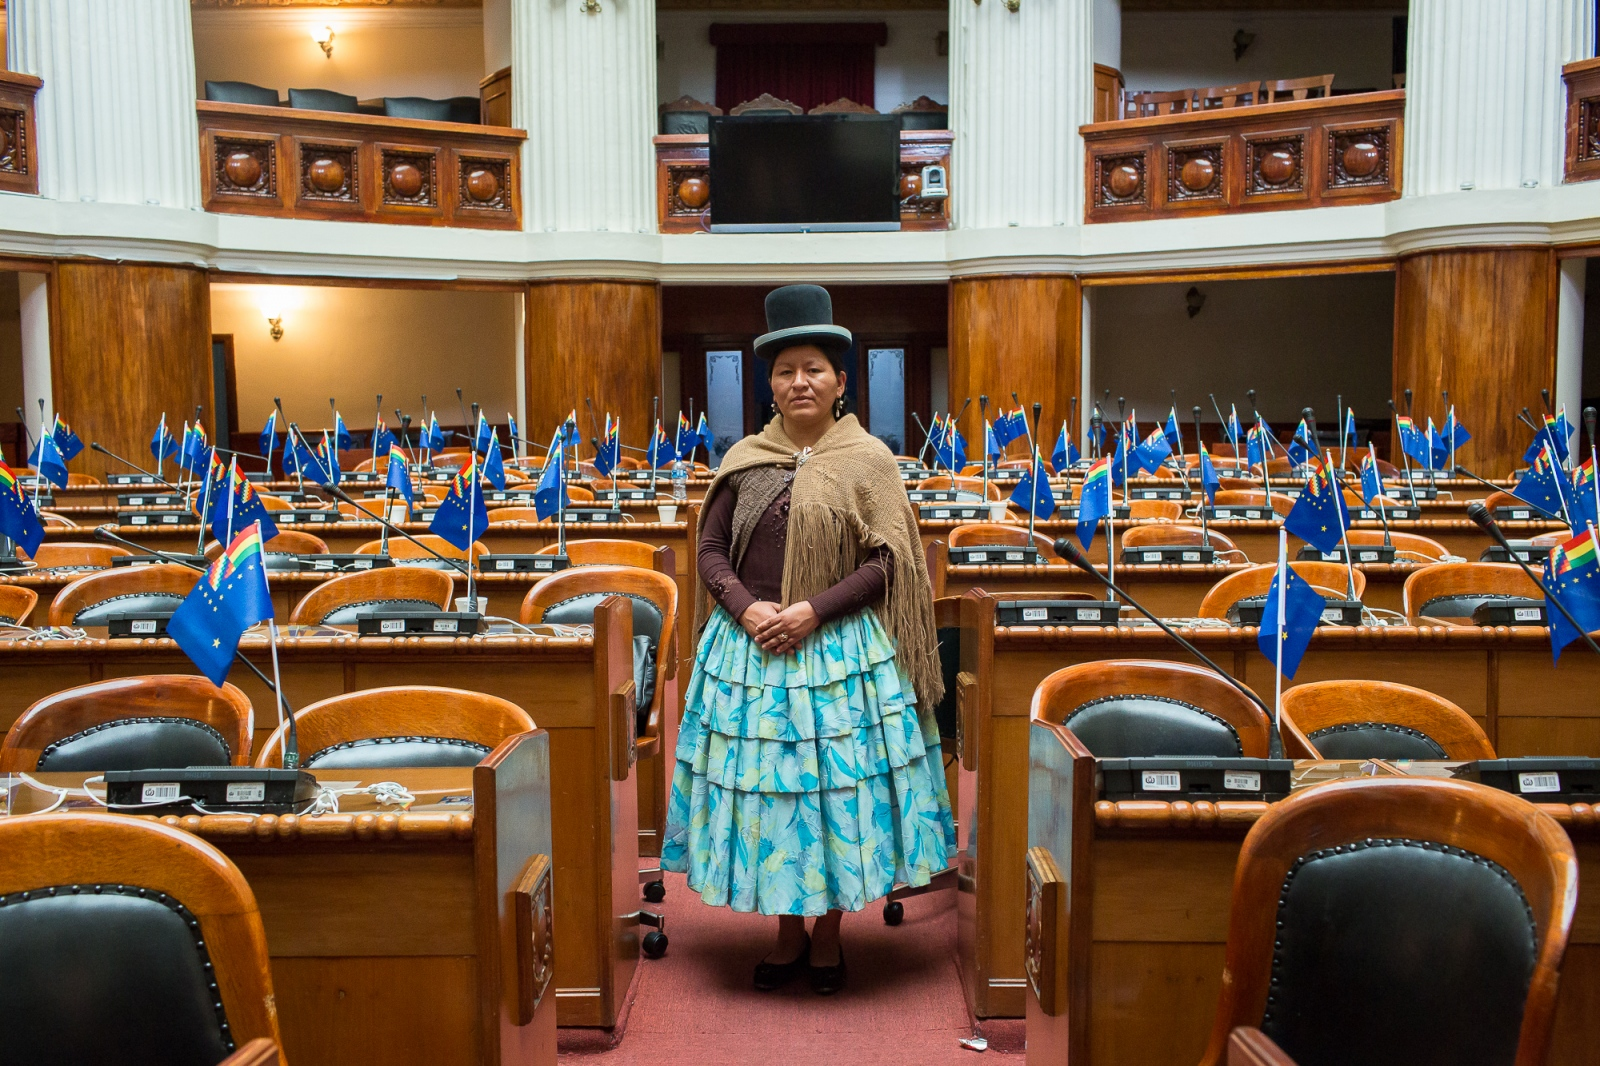 Congresswoman Cristina Paxi at the Plurinational Legislative Assembly in La Paz. After hearing countless times that women couldn't be elected to high office, Paxi decided to prove that they could. She ran for a seat in the Legislative Assembly's Chamber of Deputies in 2014 and won. In truth, more than half of the Legislative Assembly's members are women, a proportion which is second only to Rwanda.